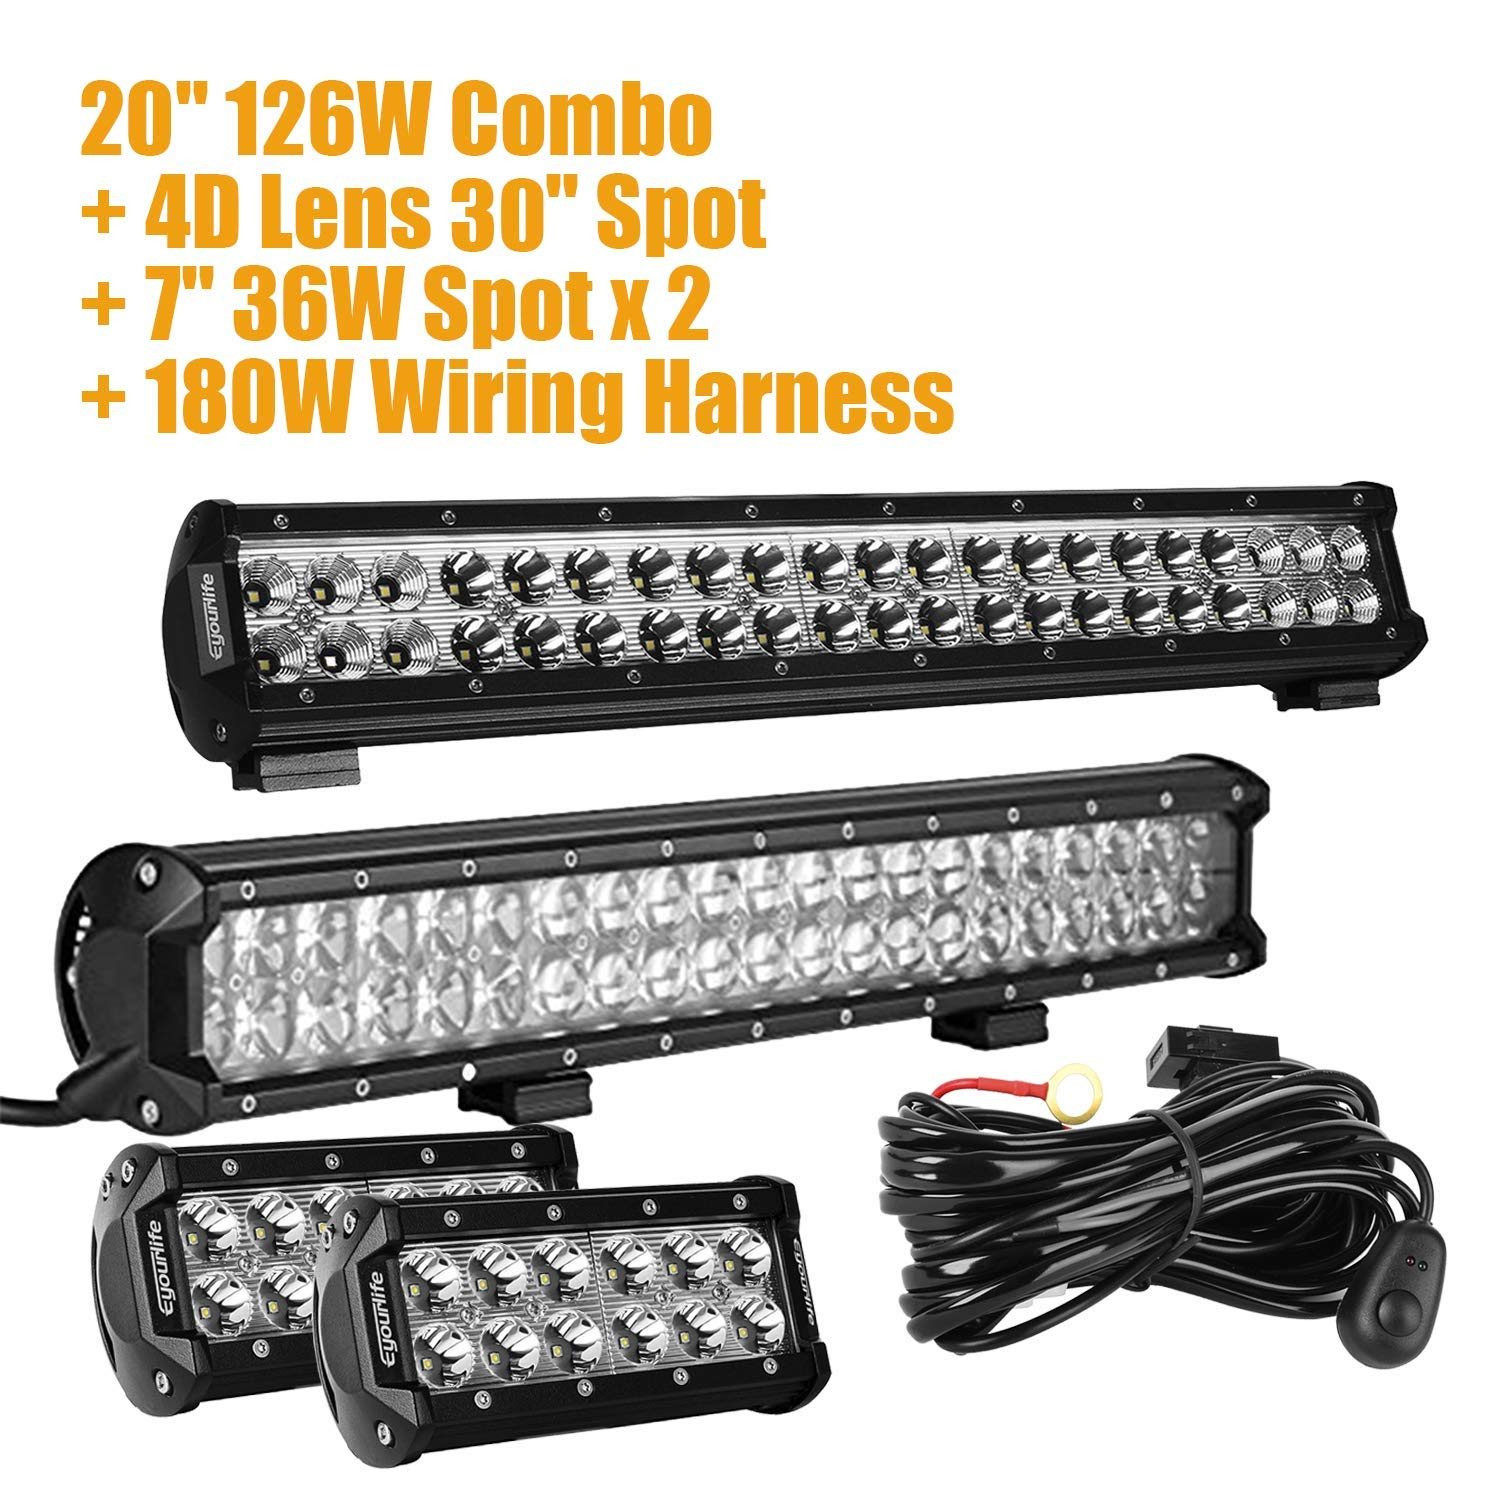 Amazon.com: Eyourlife Wiring Harness, LED Light Bar,Spot ... on off-road light bars, lag bolting down light bars, lihgt and police lights bars,